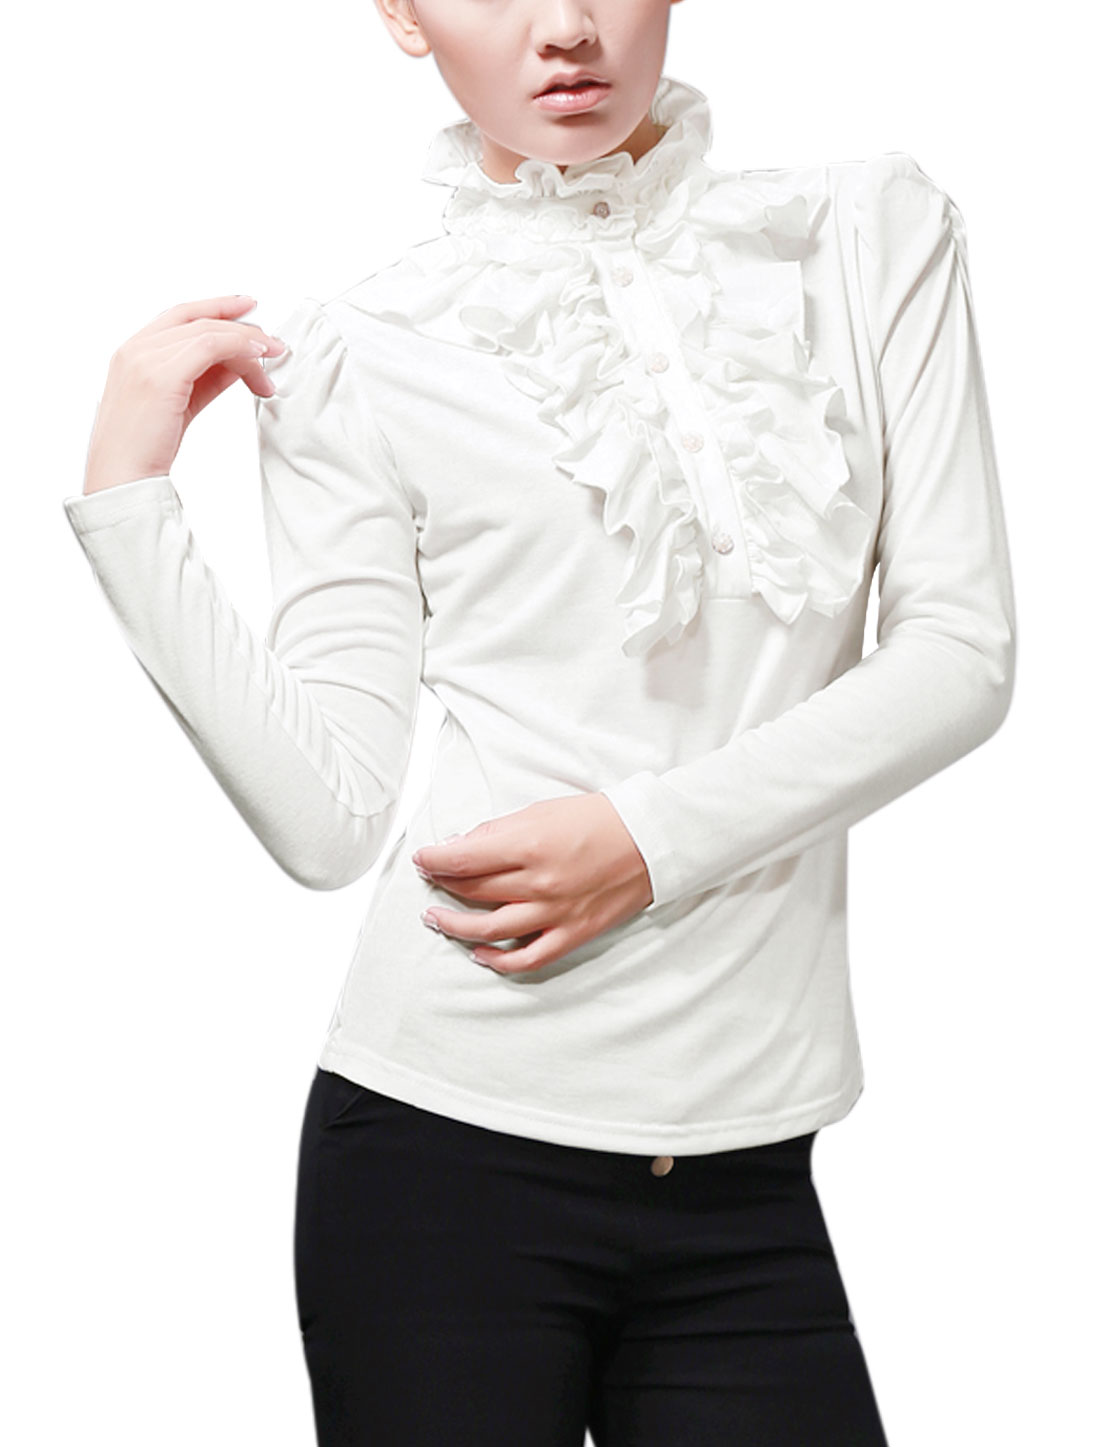 Women Chic Flouncing Stand Collar Long Sleeved White Top Shirt XL